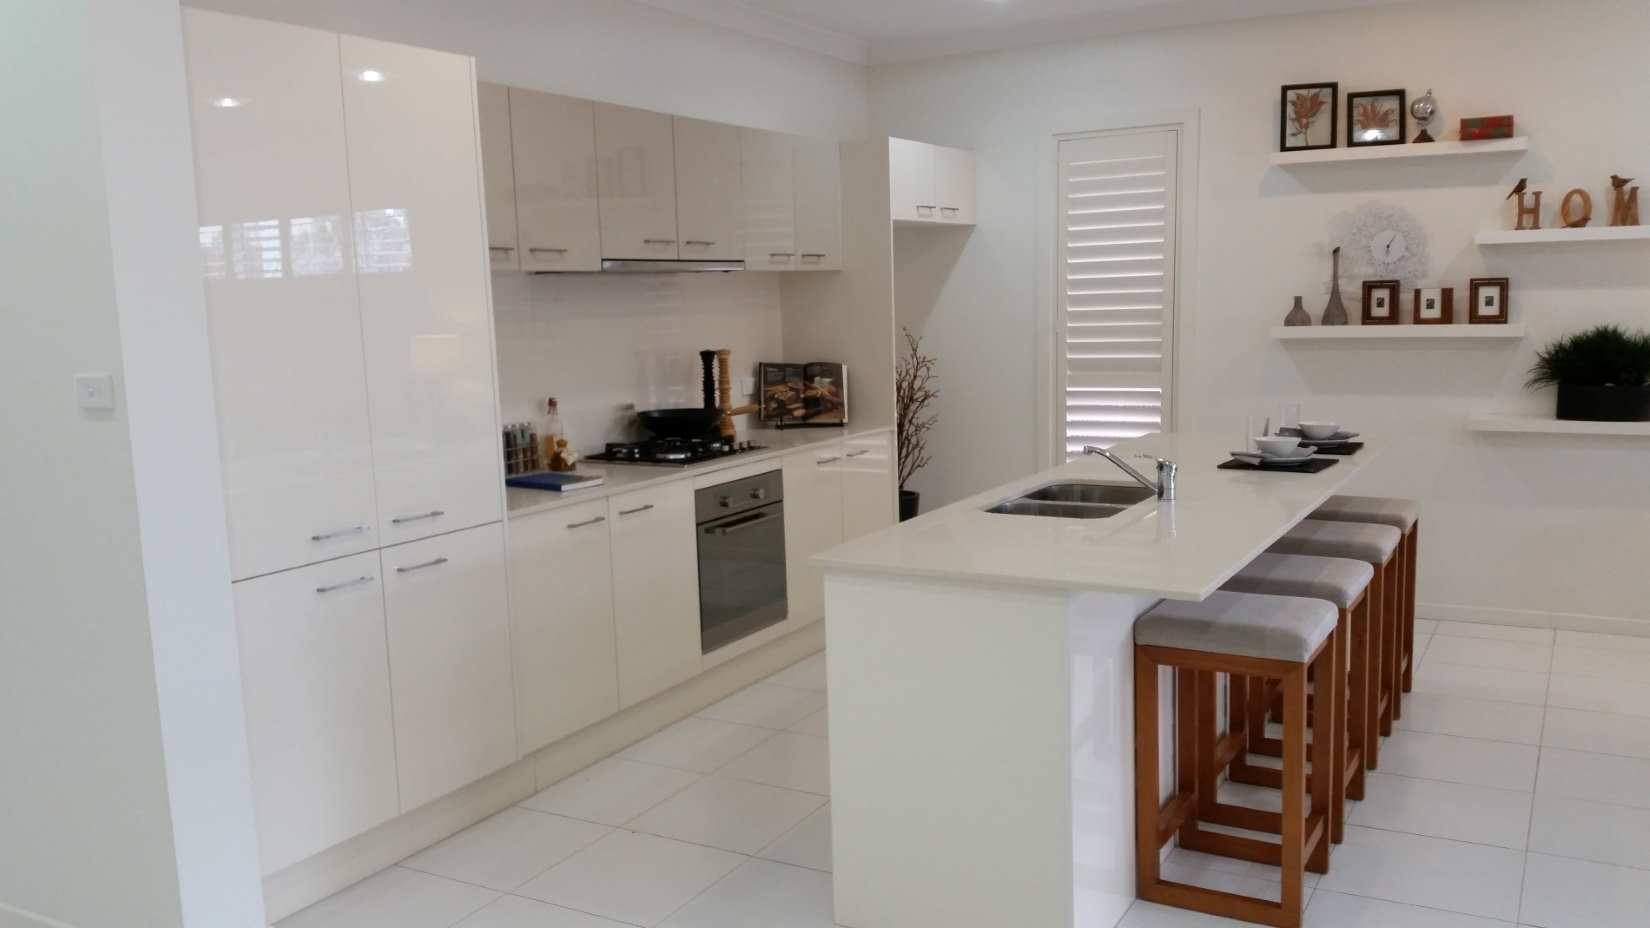 Absolute kitchen moorebank new kitchens and bathrooms for 0 kitchens and bathrooms